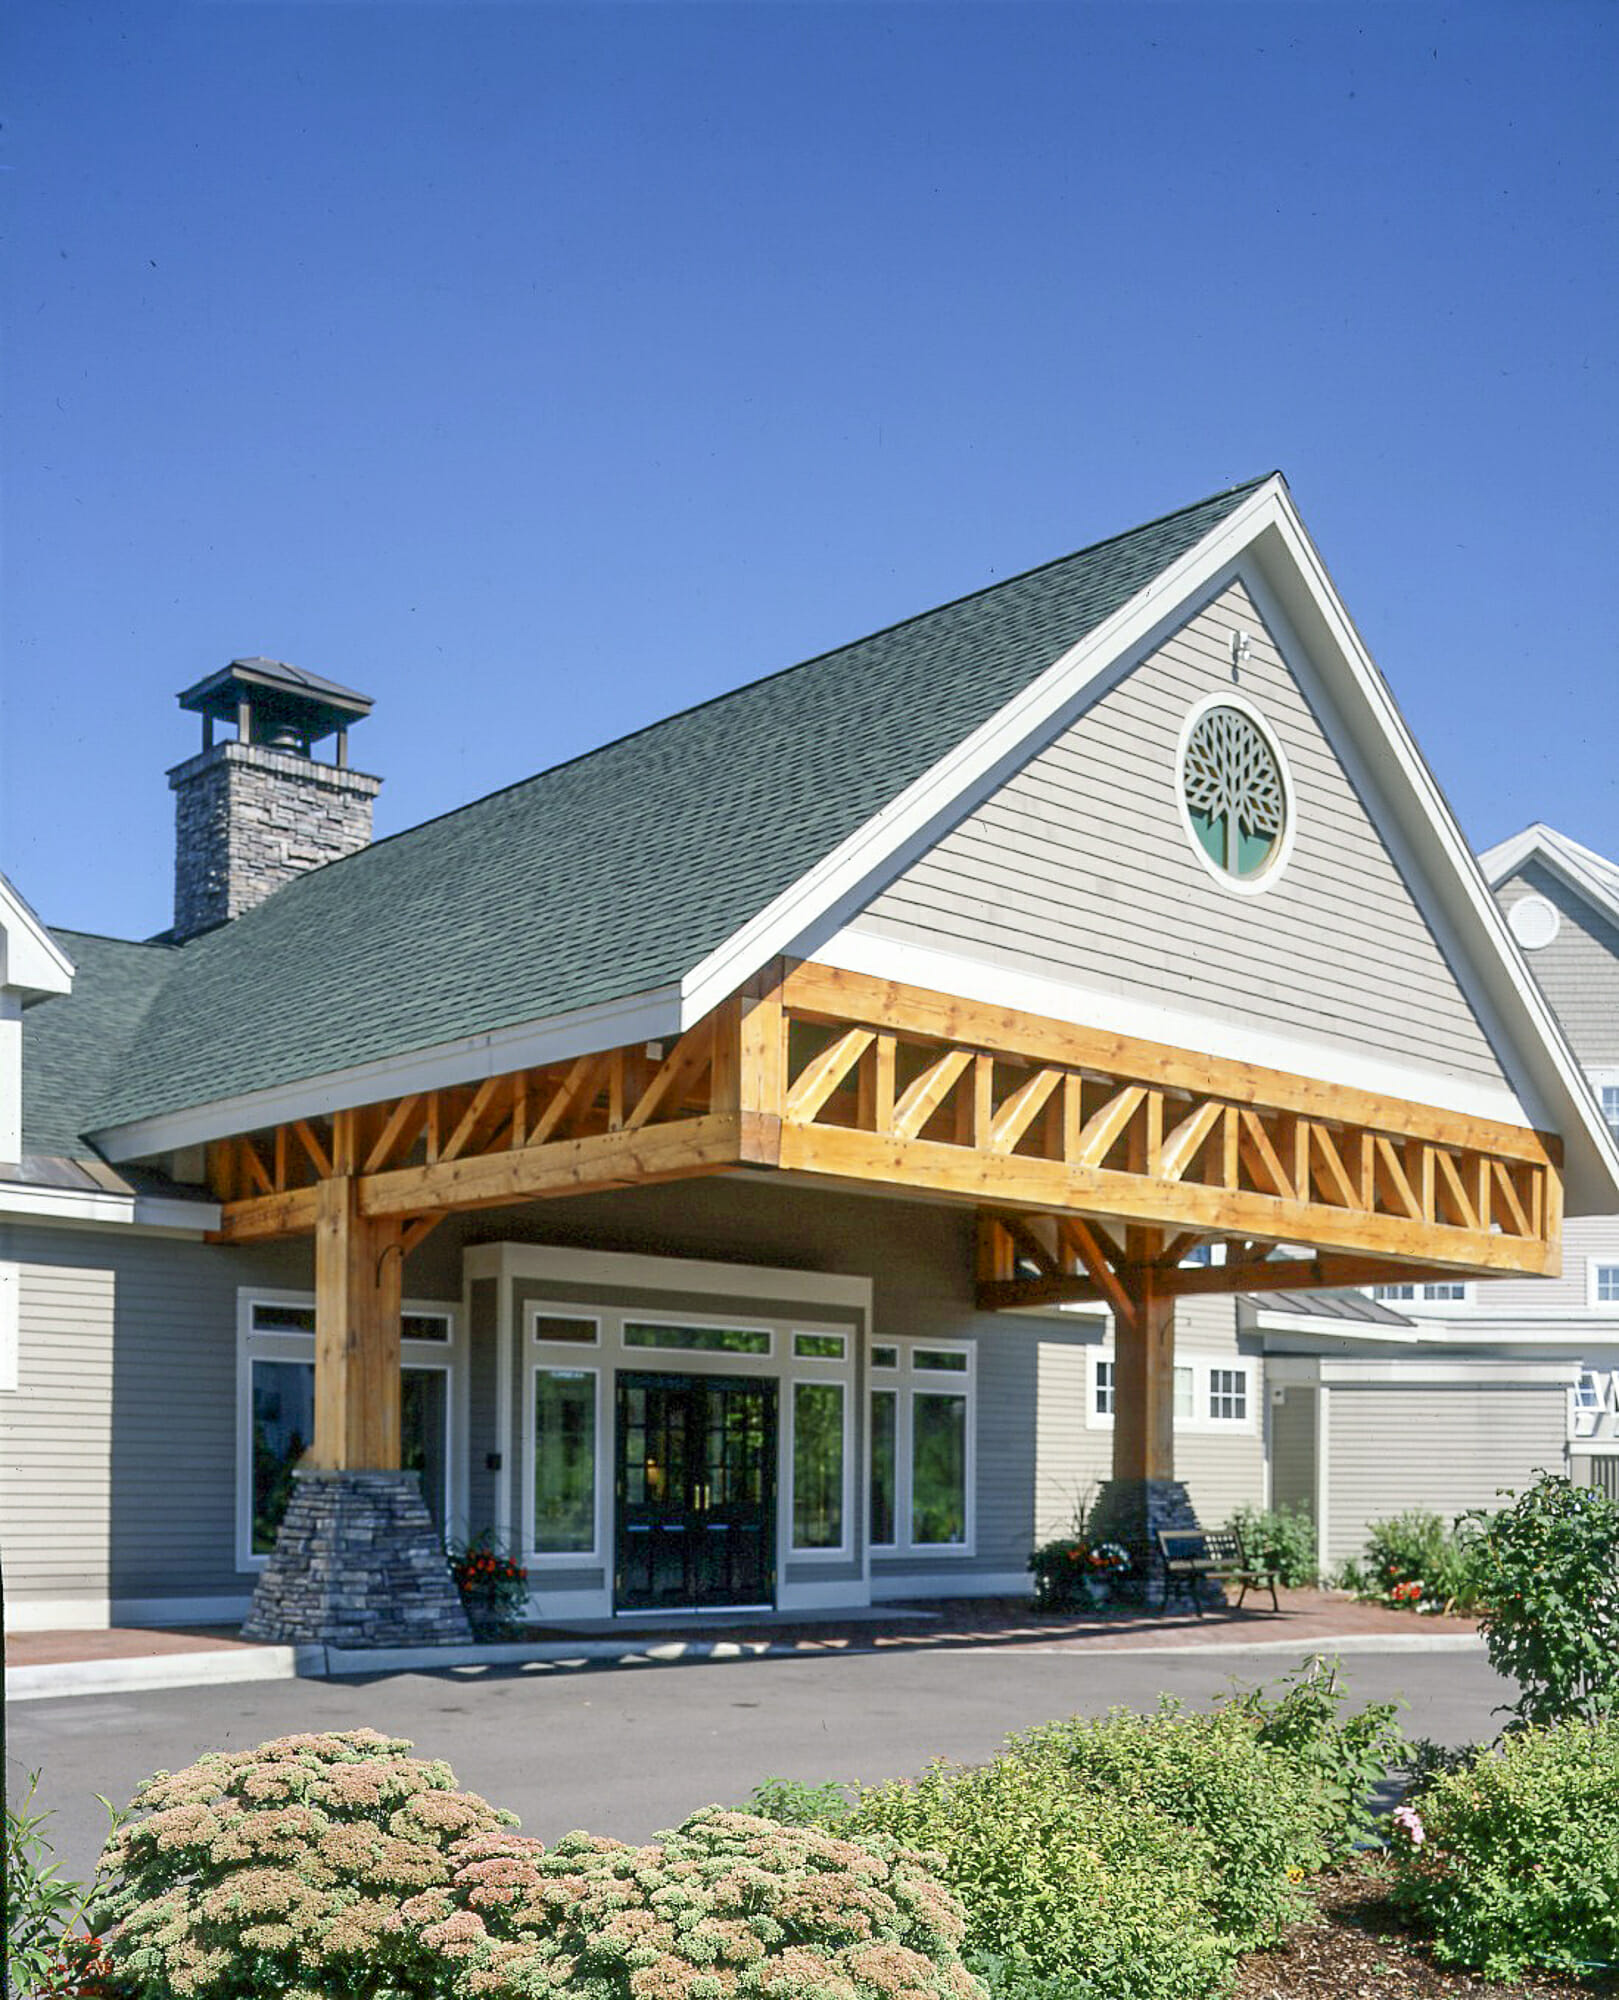 Timber frame hotel trusses porte cochere for Truss designs for homes